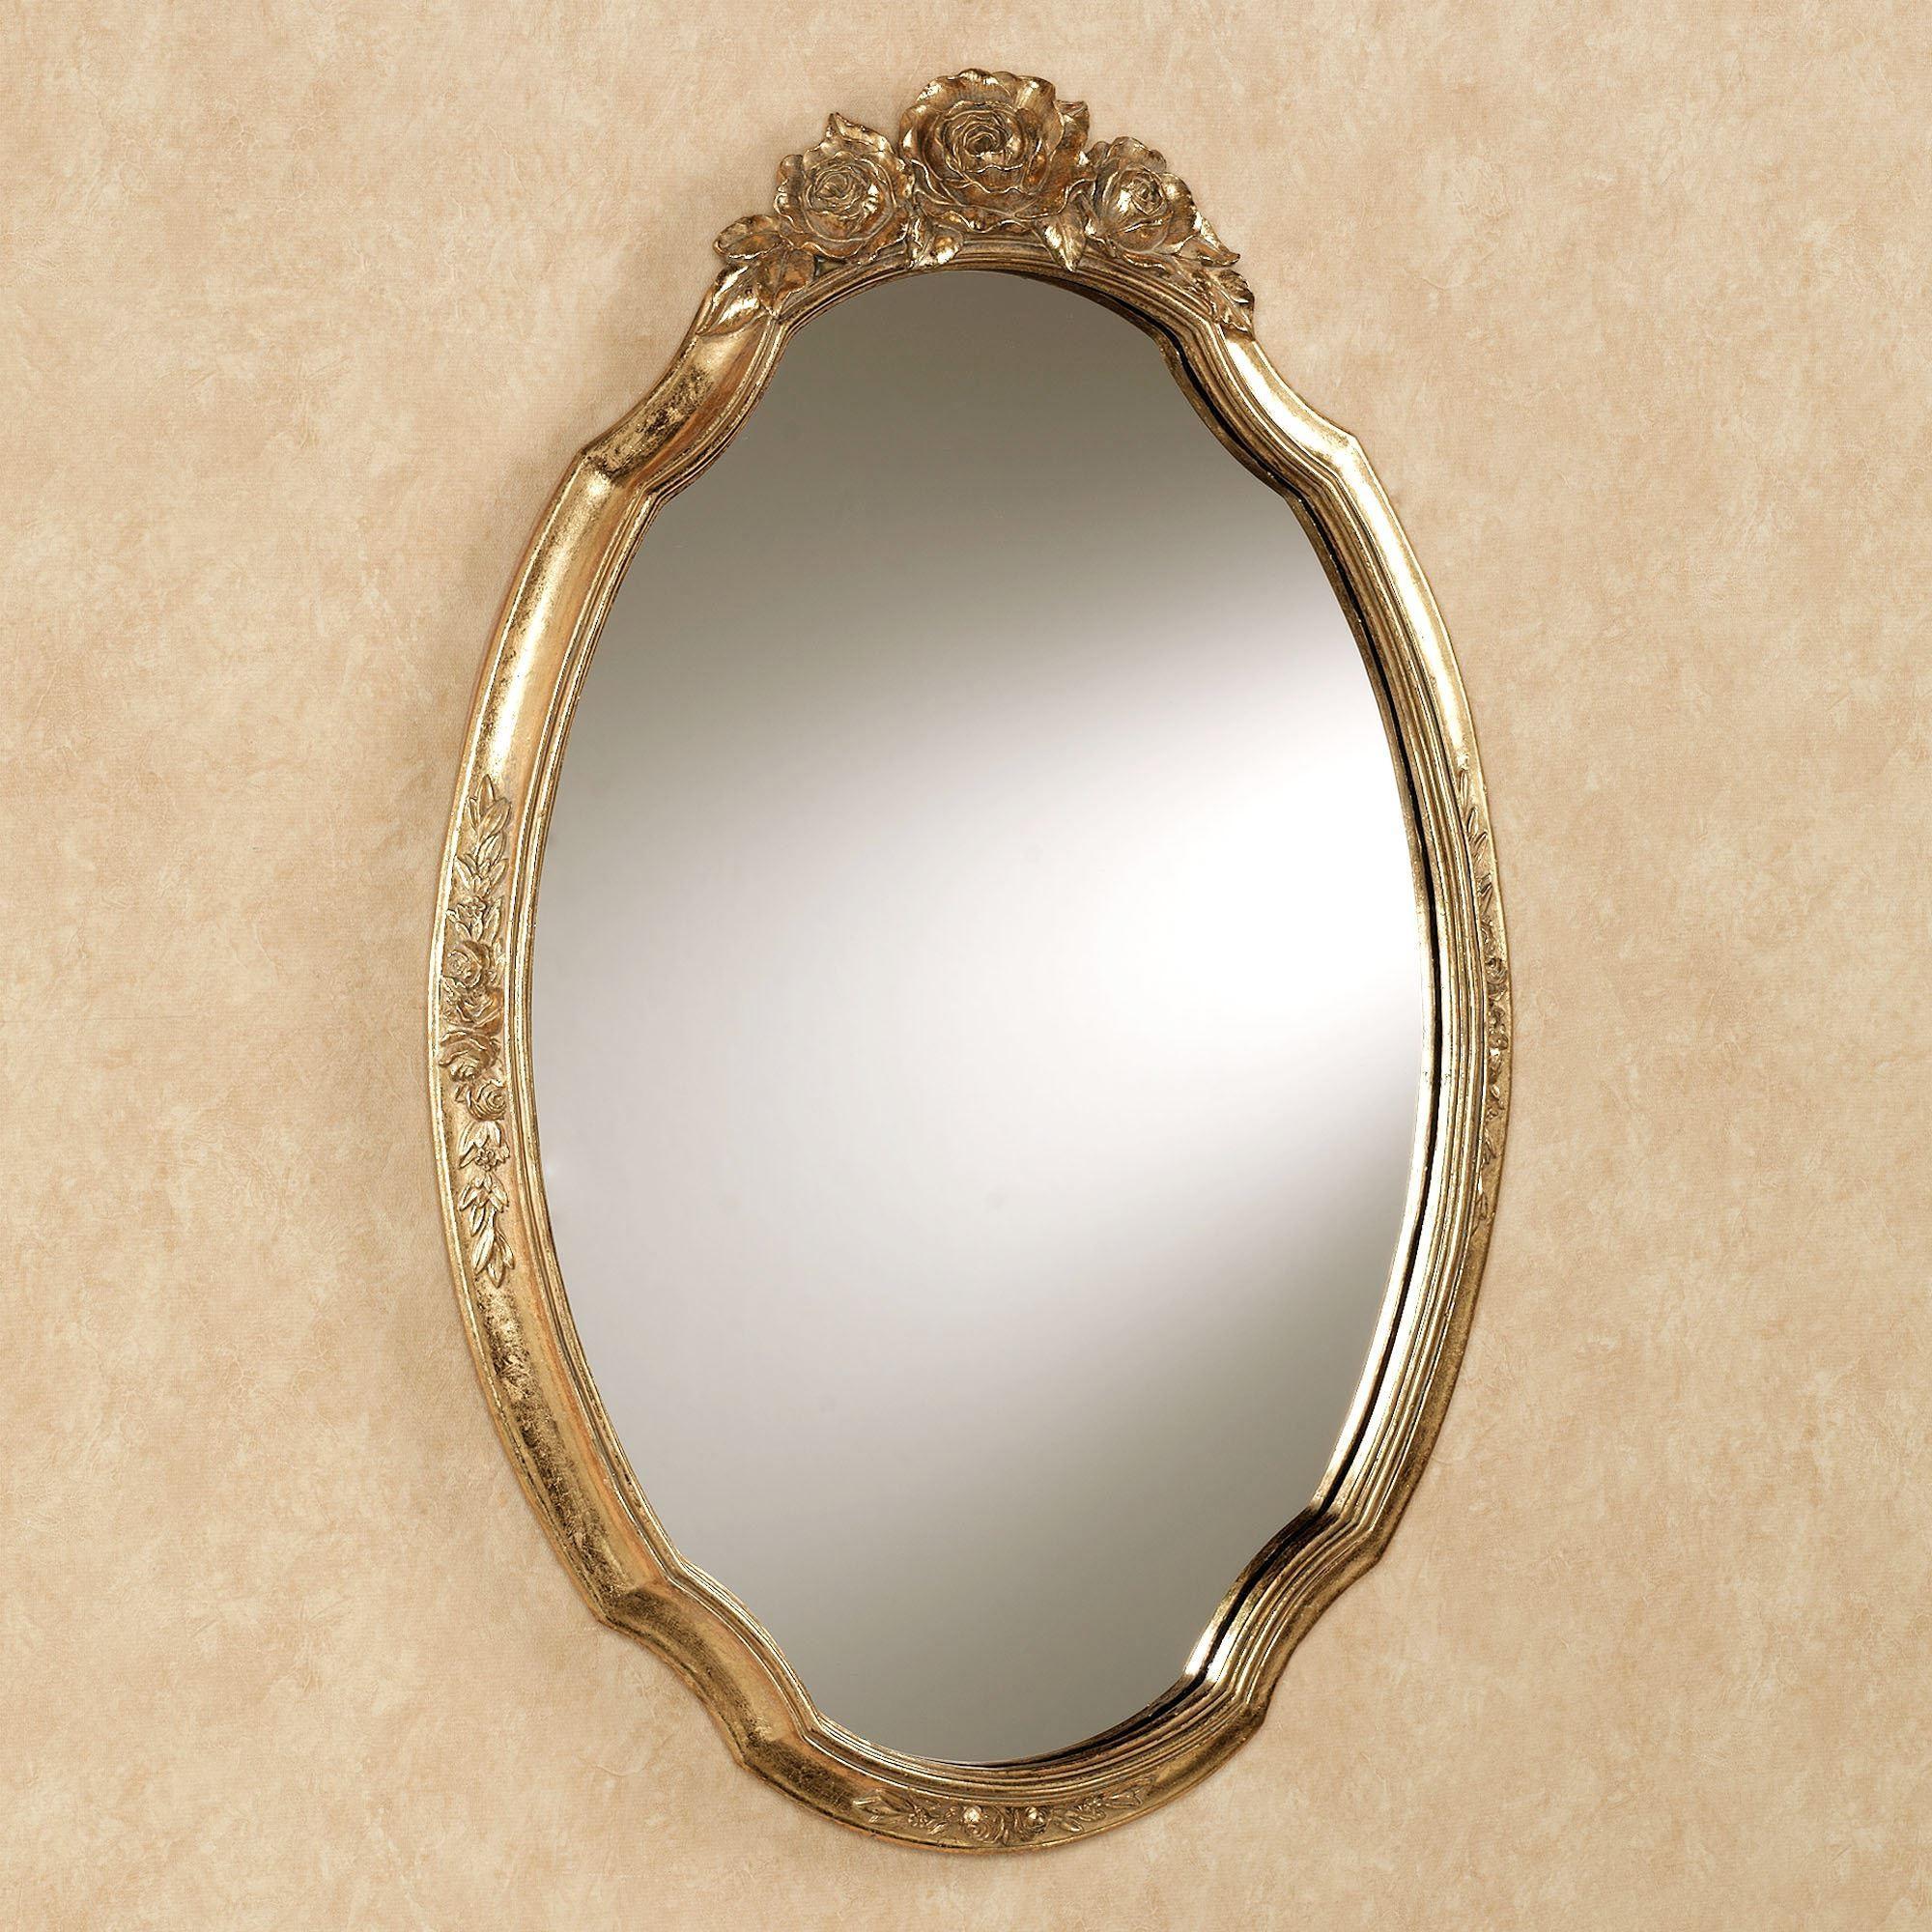 Jorah Rose Oval Wall Mirror Intended For Gold Oval Mirrors (Image 12 of 20)